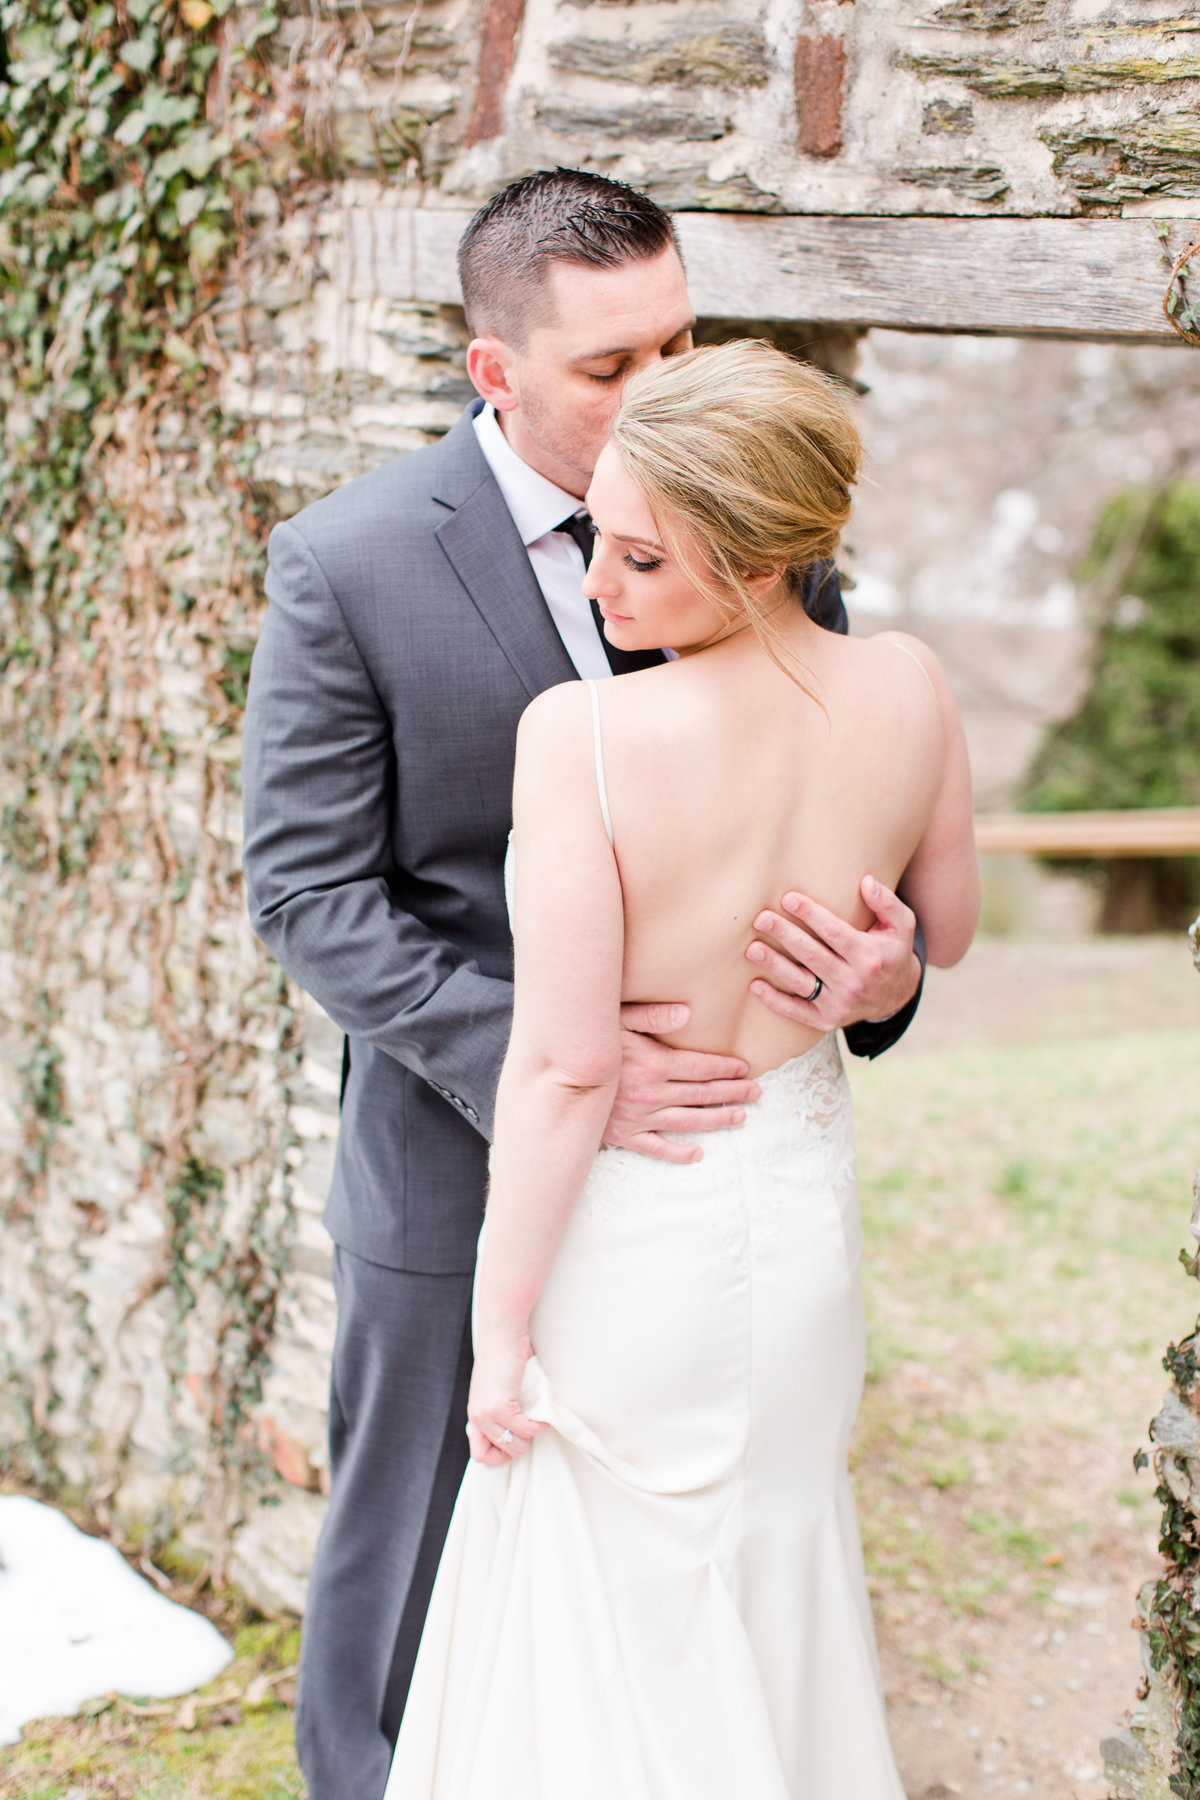 jess-adam-mountainside-elopement-harpers-ferry-wv-bethanne-arthur-photography-photos-385